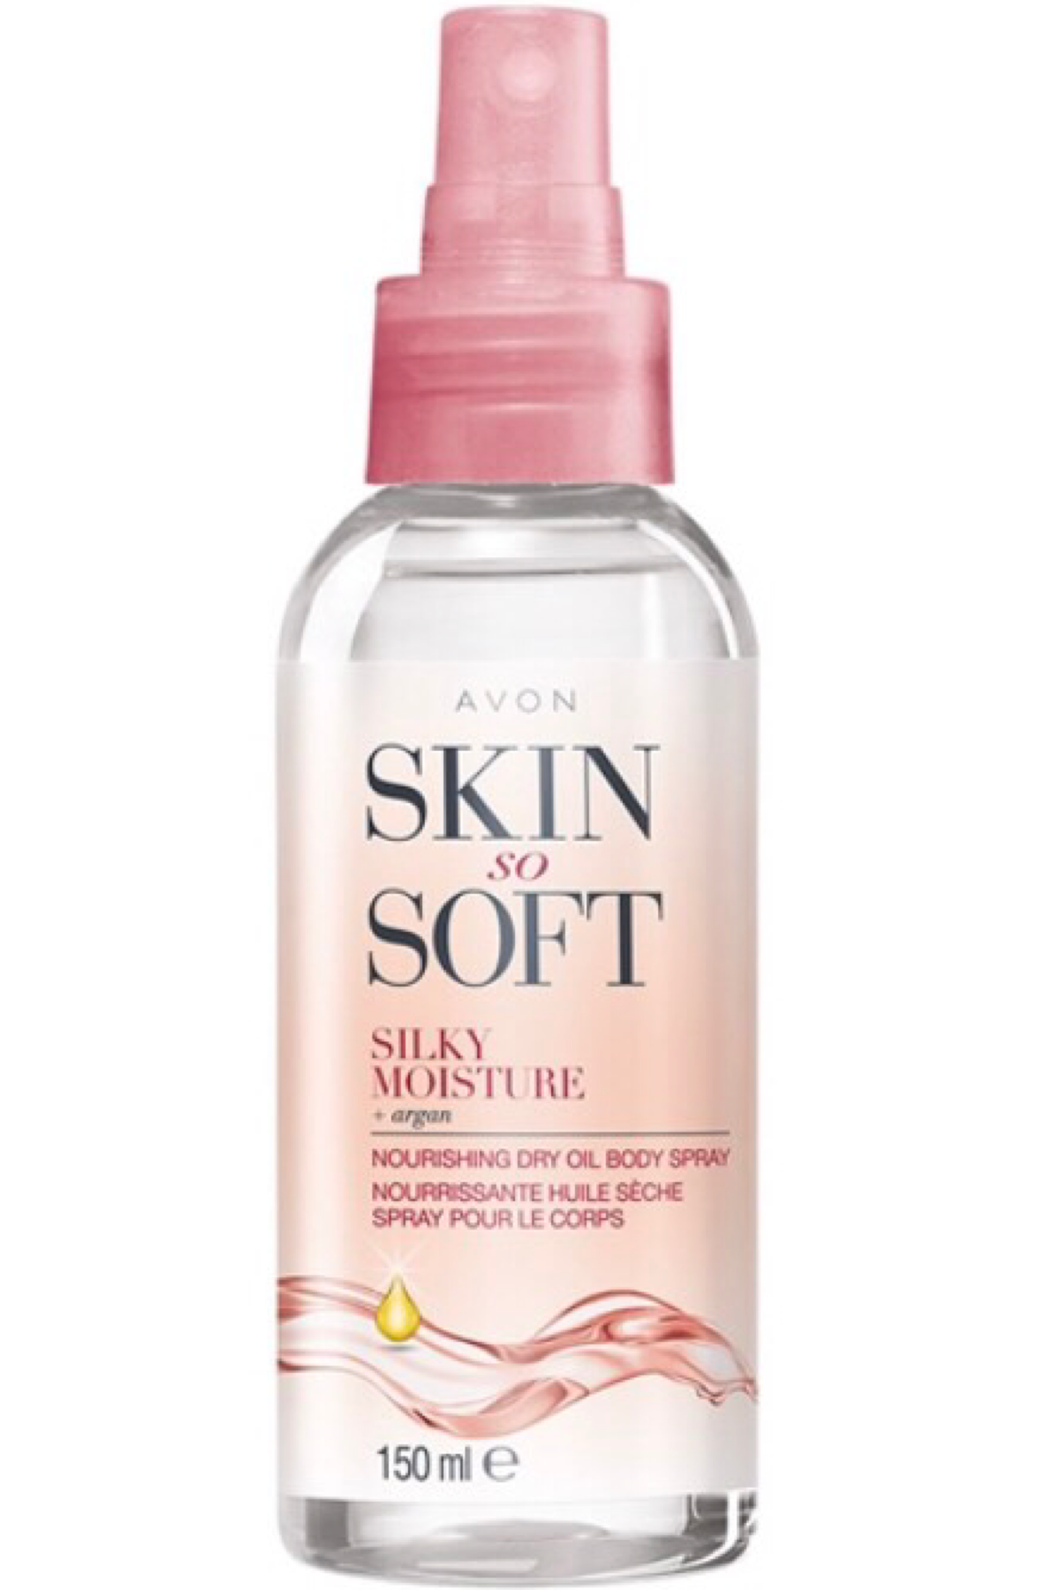 Avon Skin So Soft Silky Moisture Nourishing Dry Oil Spray 150ml